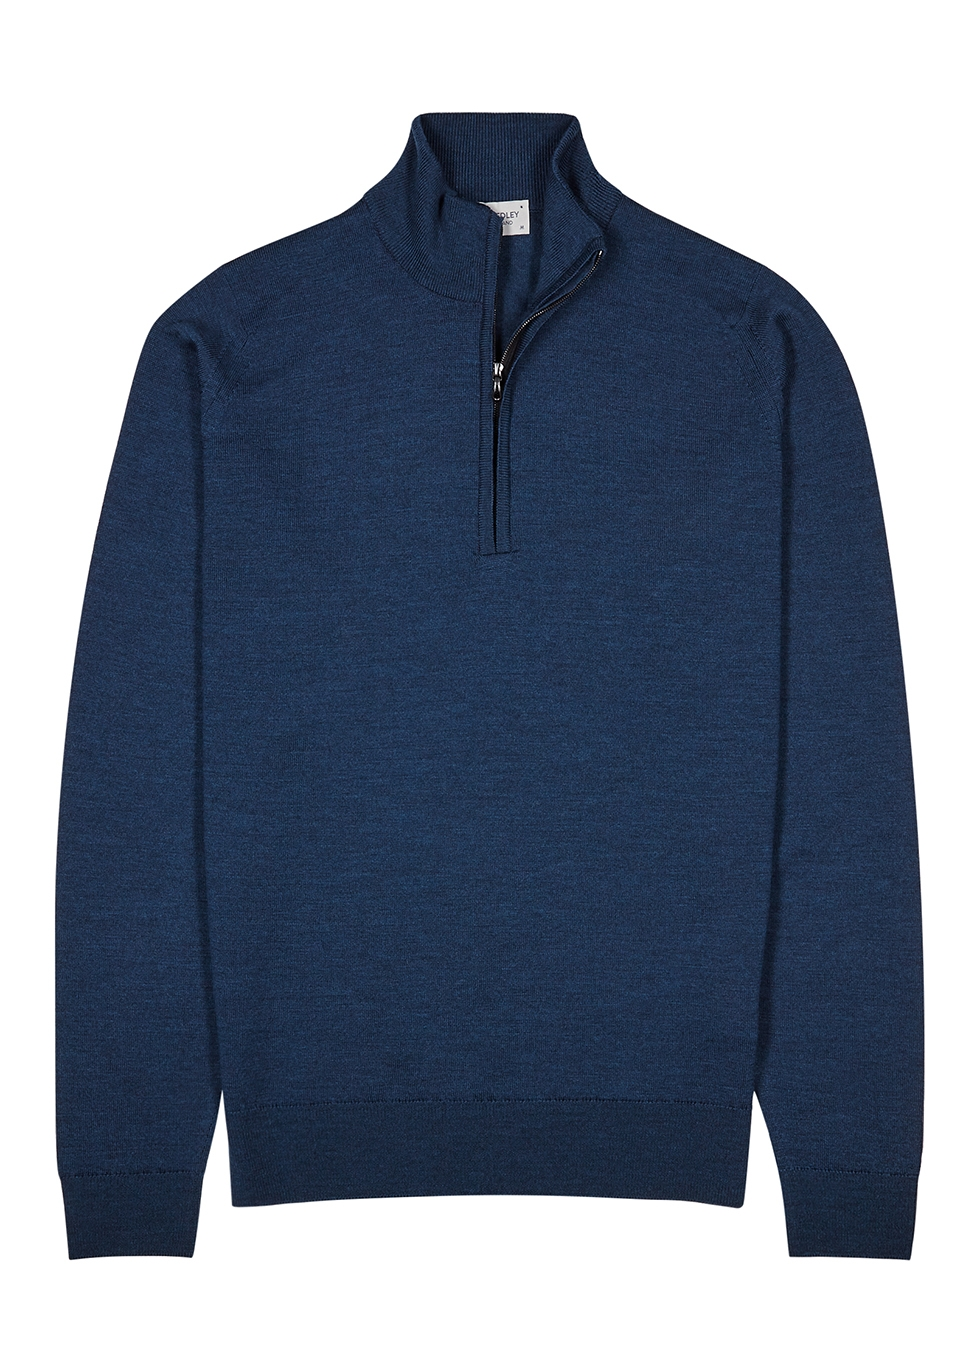 Tapton navy wool jumper